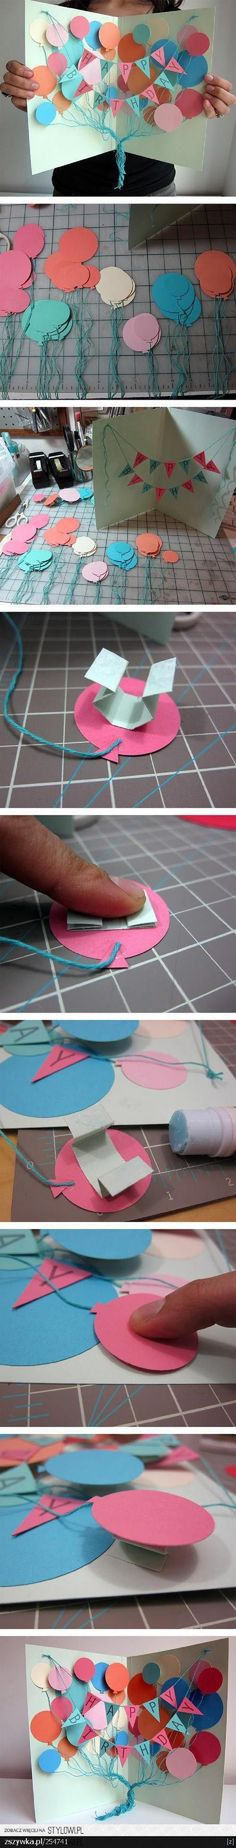 Awesome DIY Birthday Card - A Creative, Meaningful and Cheap DIY Gift for Friends and Family